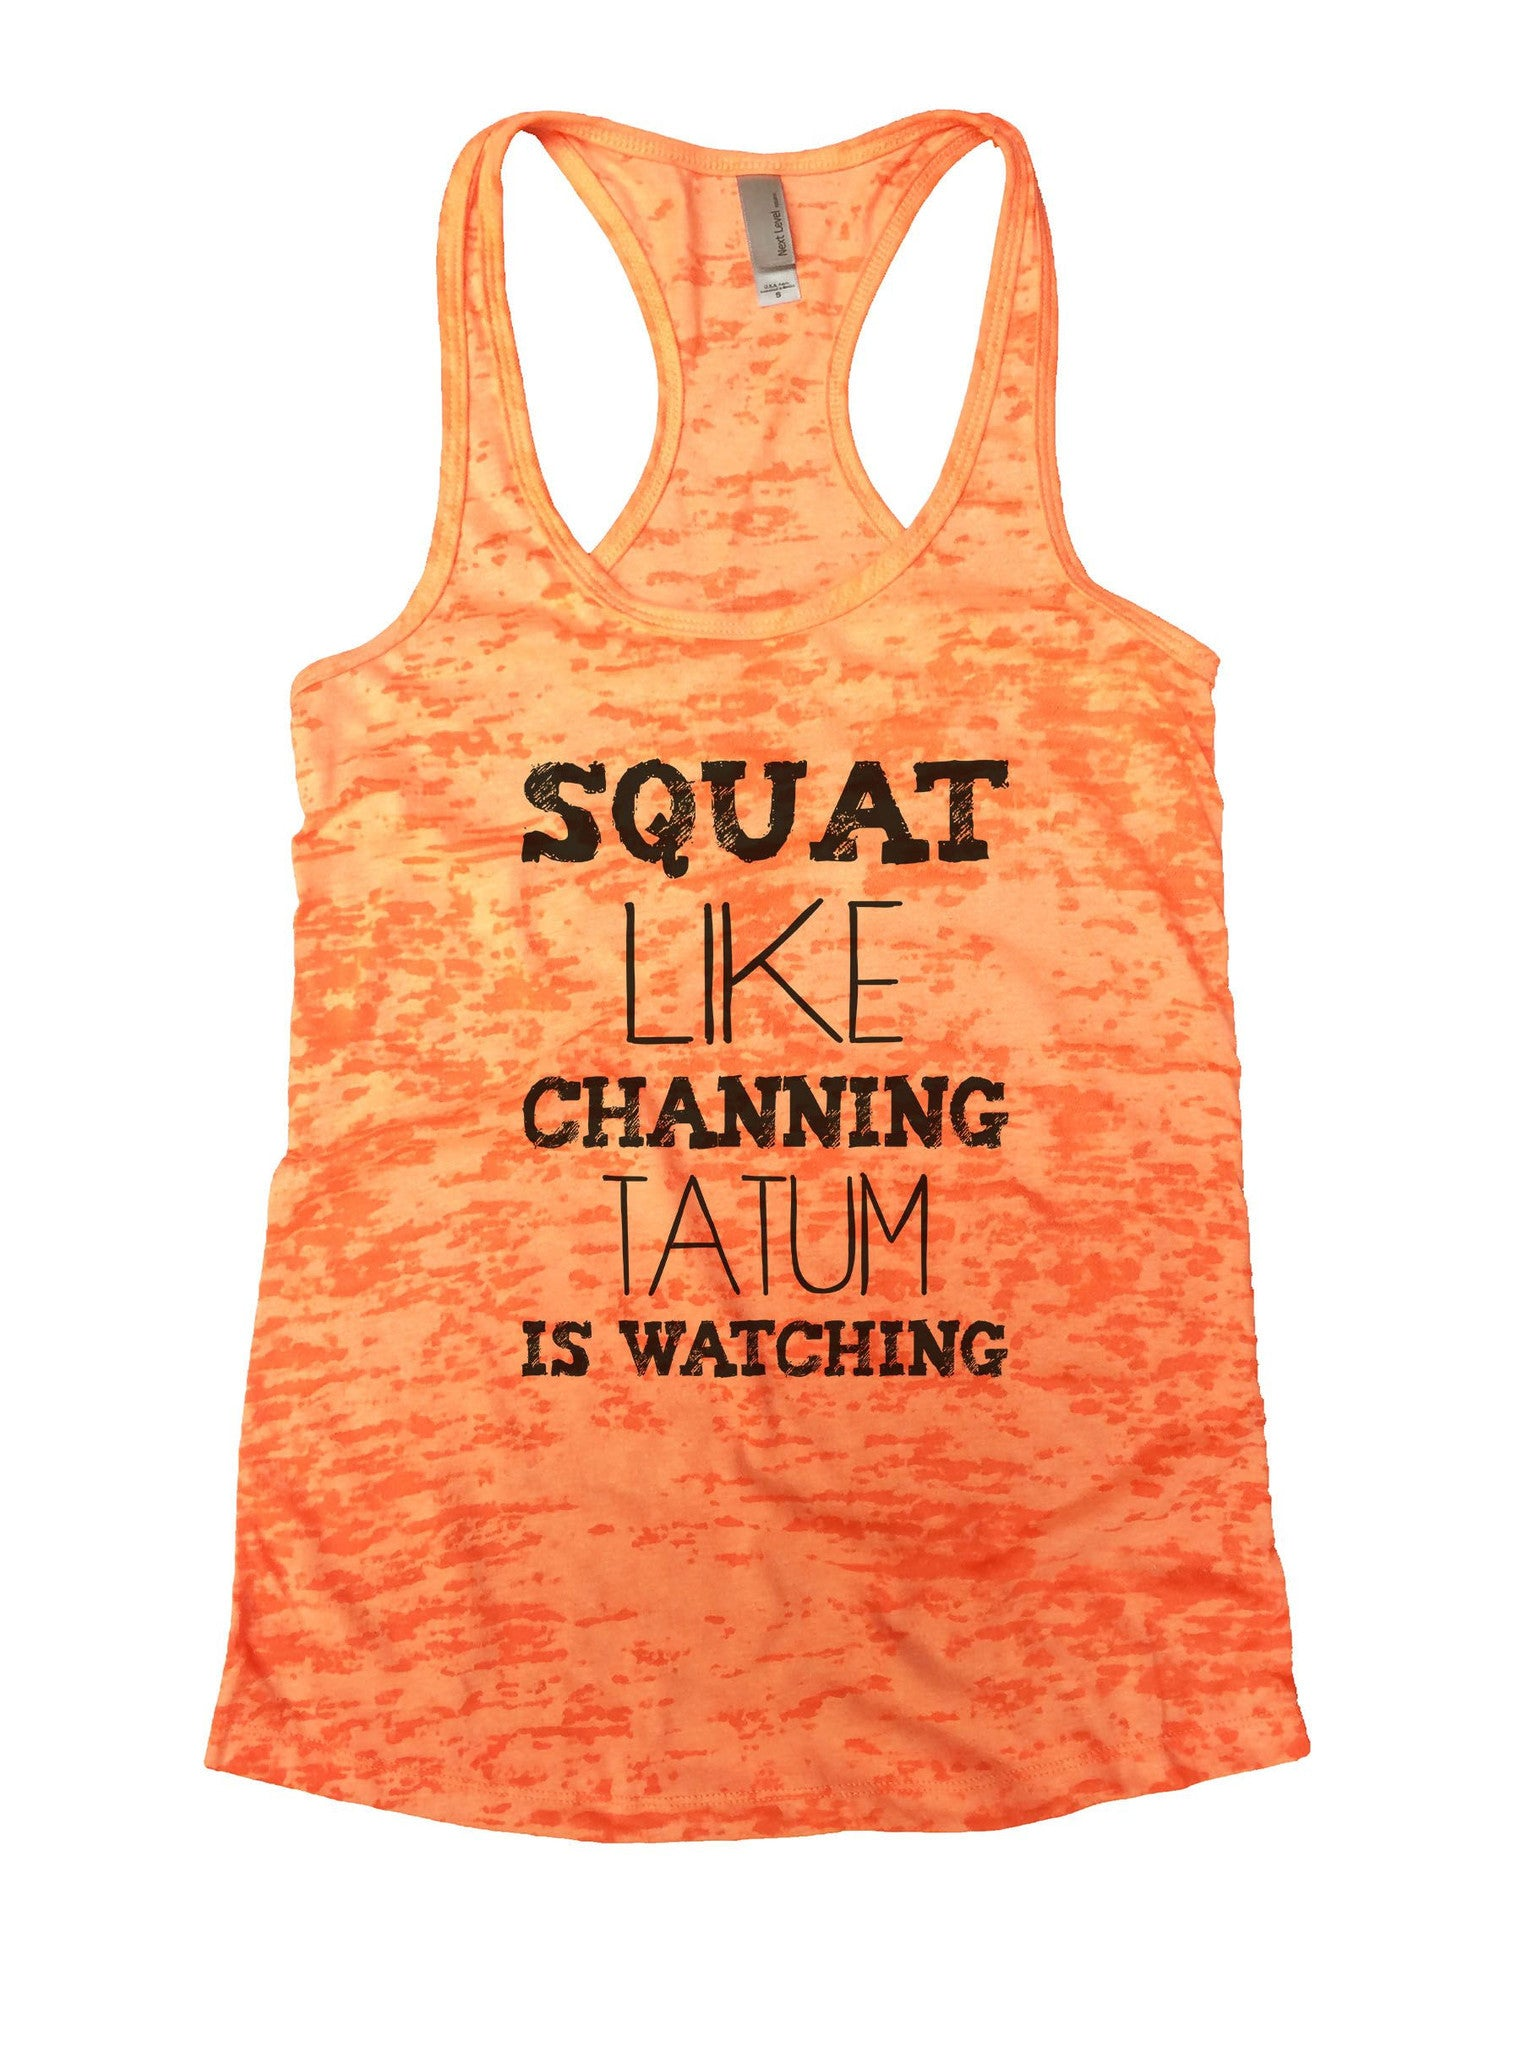 Squat Like Channing Tatum Is Watching Burnout Tank Top By BurnoutTankTops.com - 901 - Funny Shirts Tank Tops Burnouts and Triblends  - 3